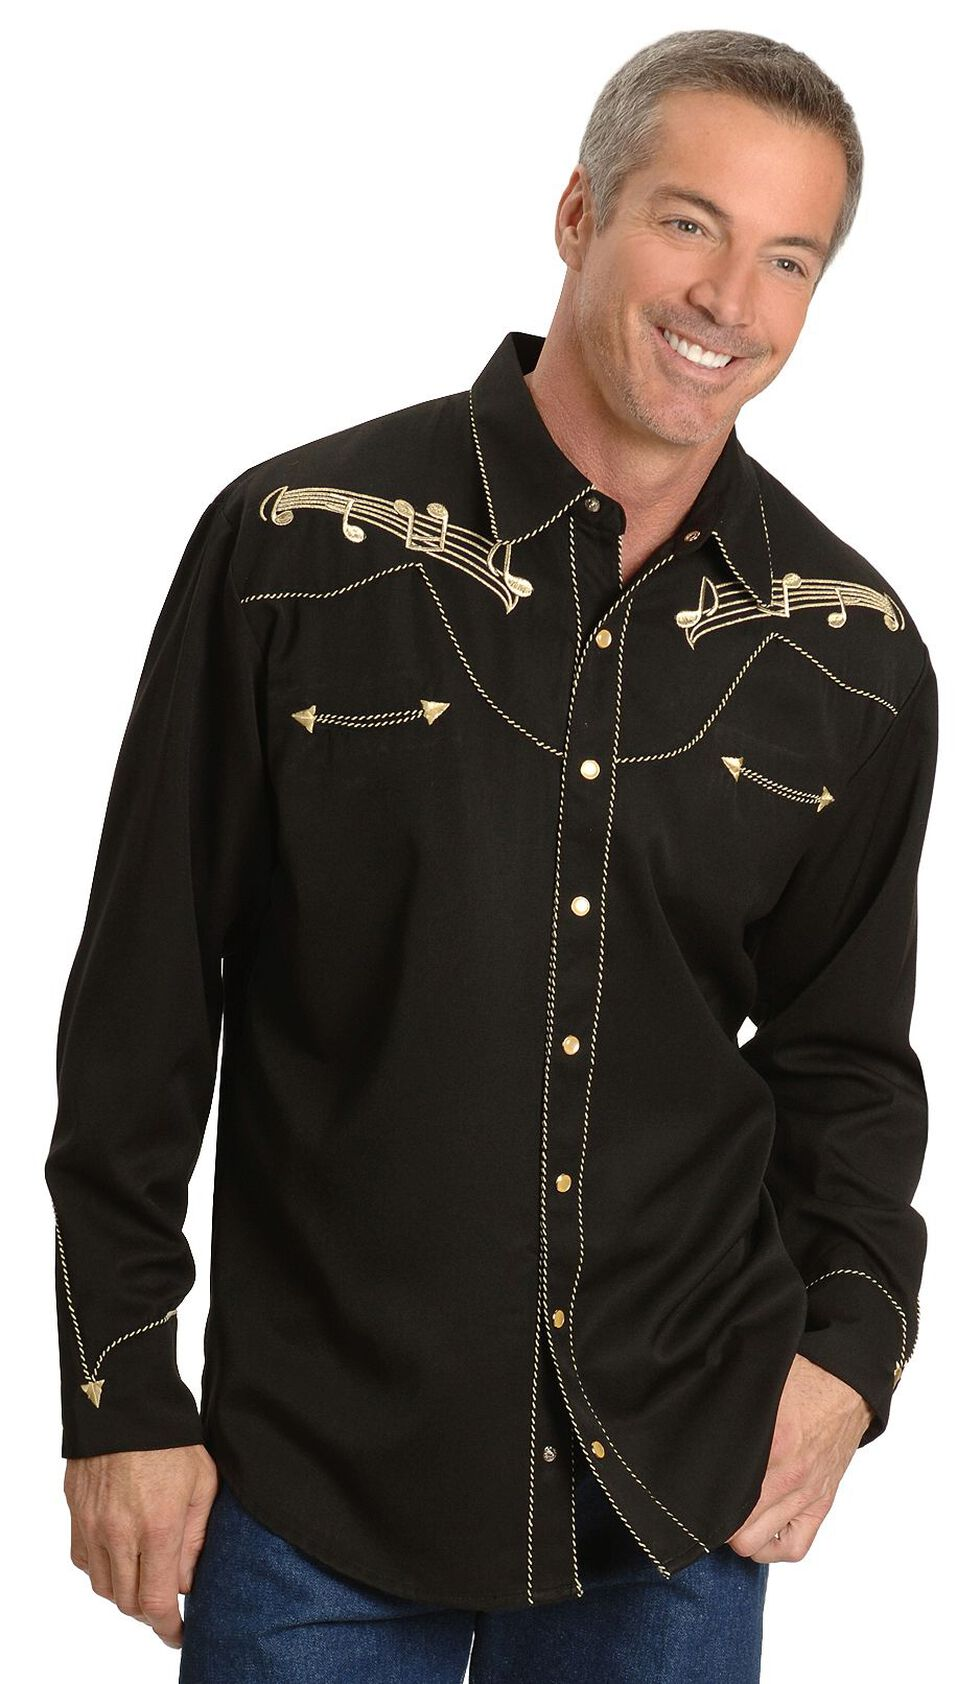 Scully Music Note Embroidered Retro Western Shirt - Big & Tall, Black, hi-res